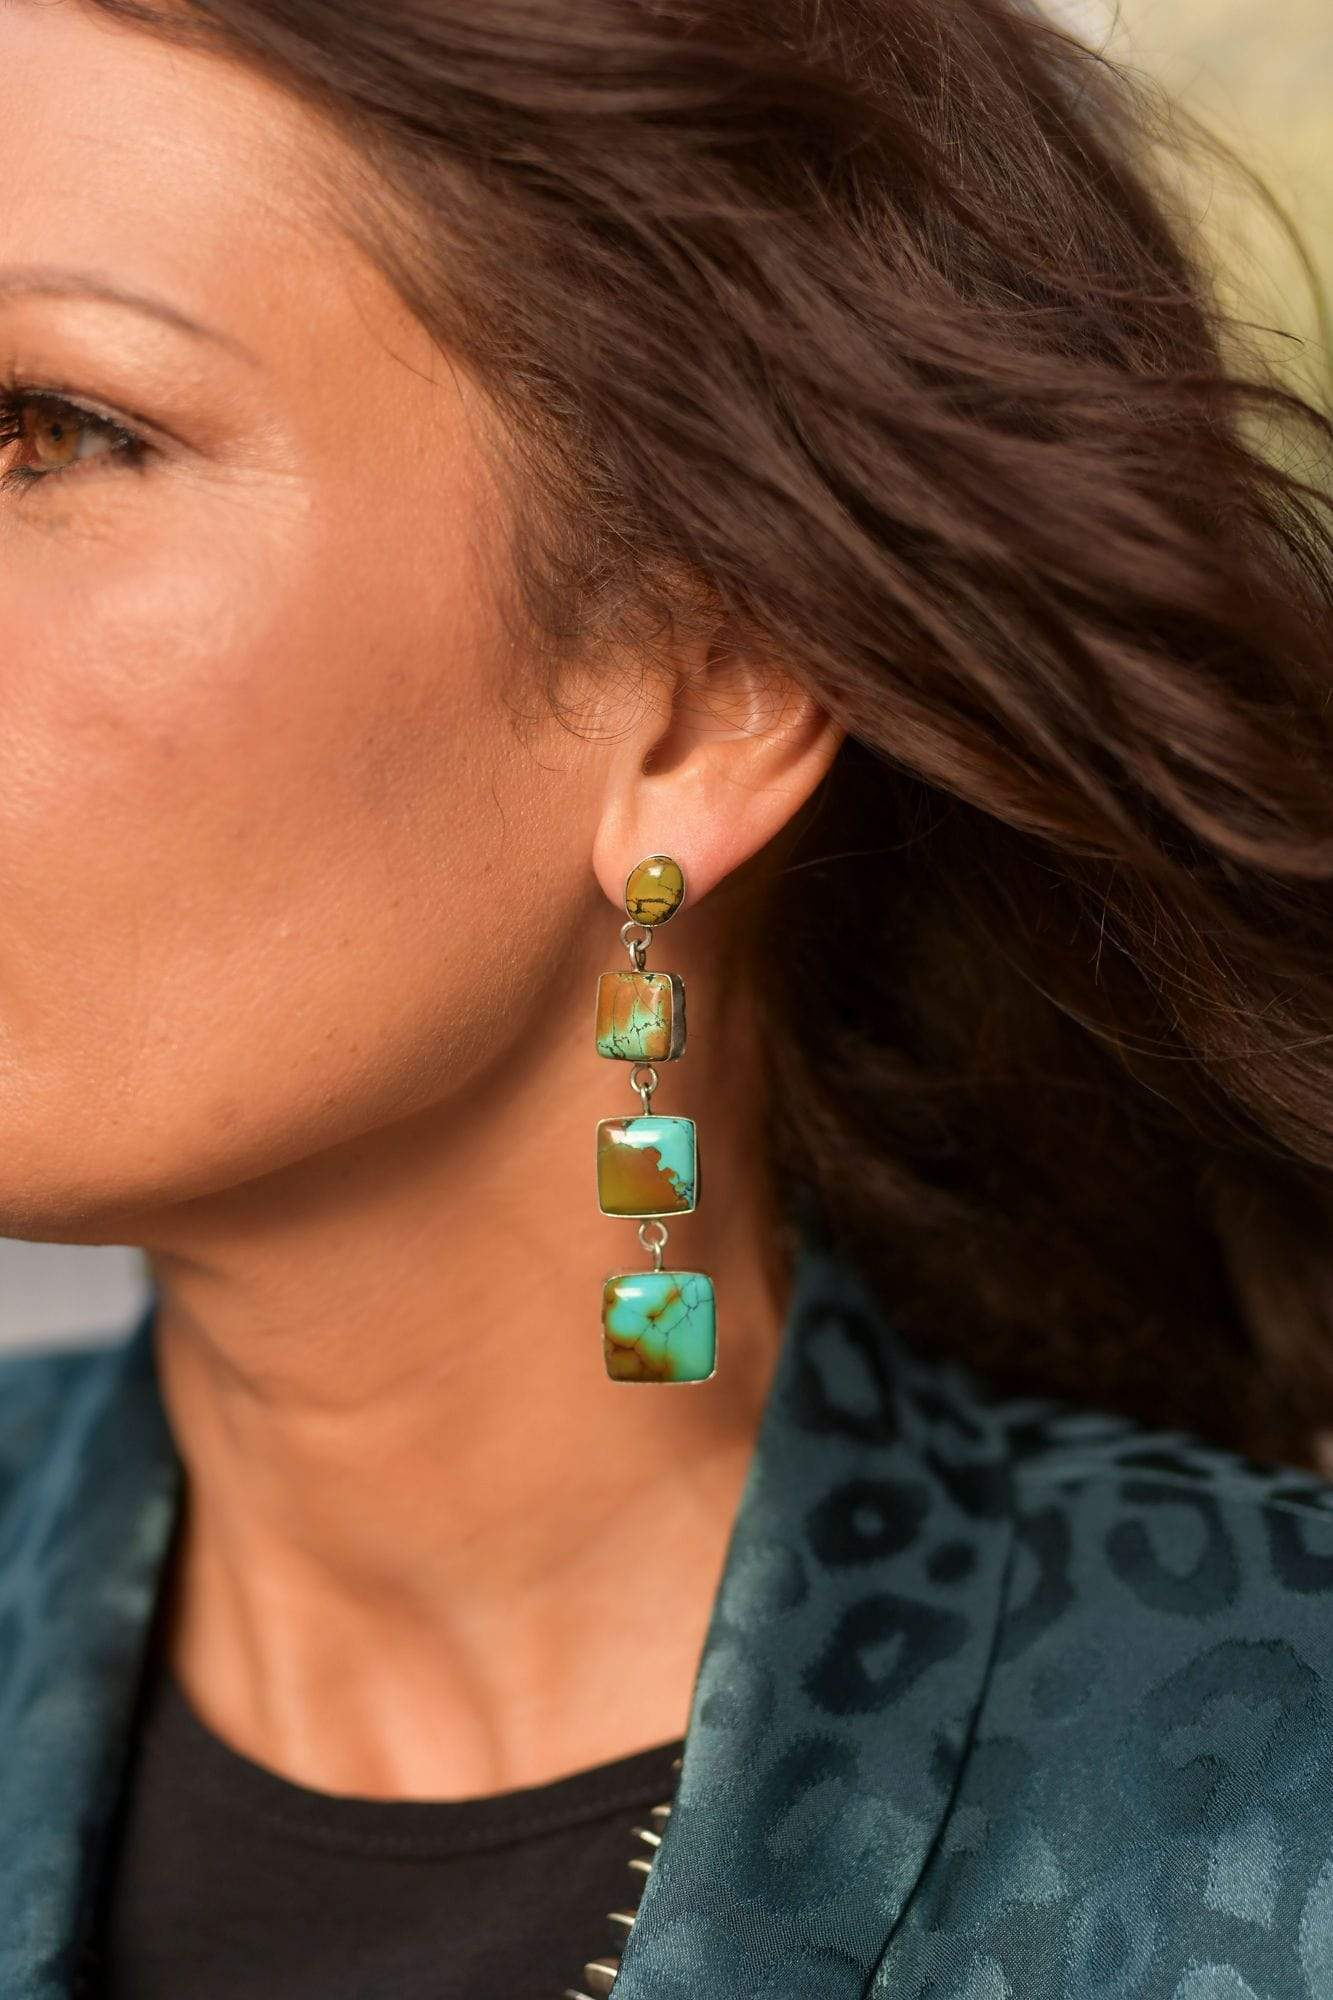 Accessorize In Style Sterling Earrings Sterling Square Tier Turquoise Earrings